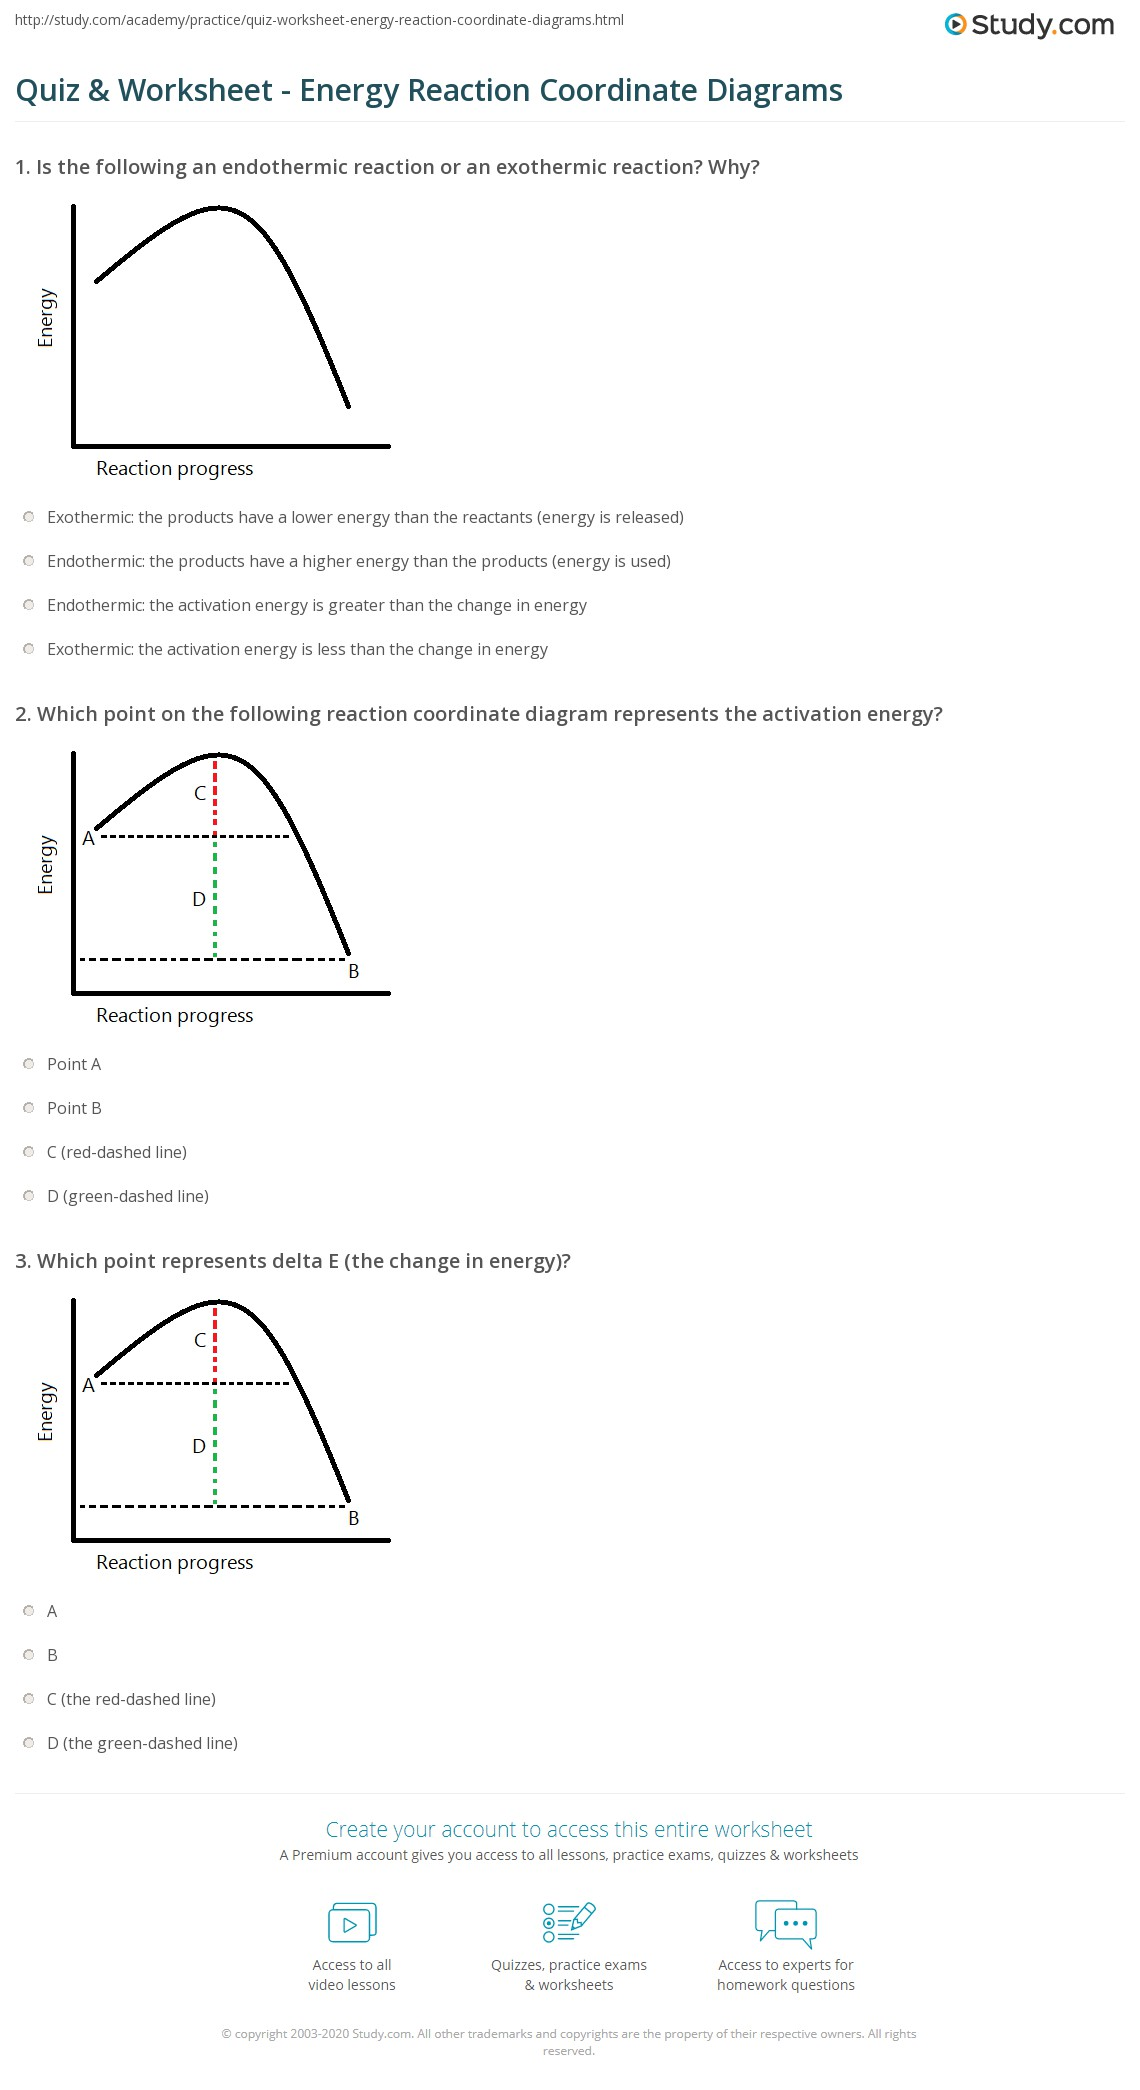 Worksheets Potential Energy Diagram Worksheet energy diagram worksheet free worksheets library download and potential for school pigmu